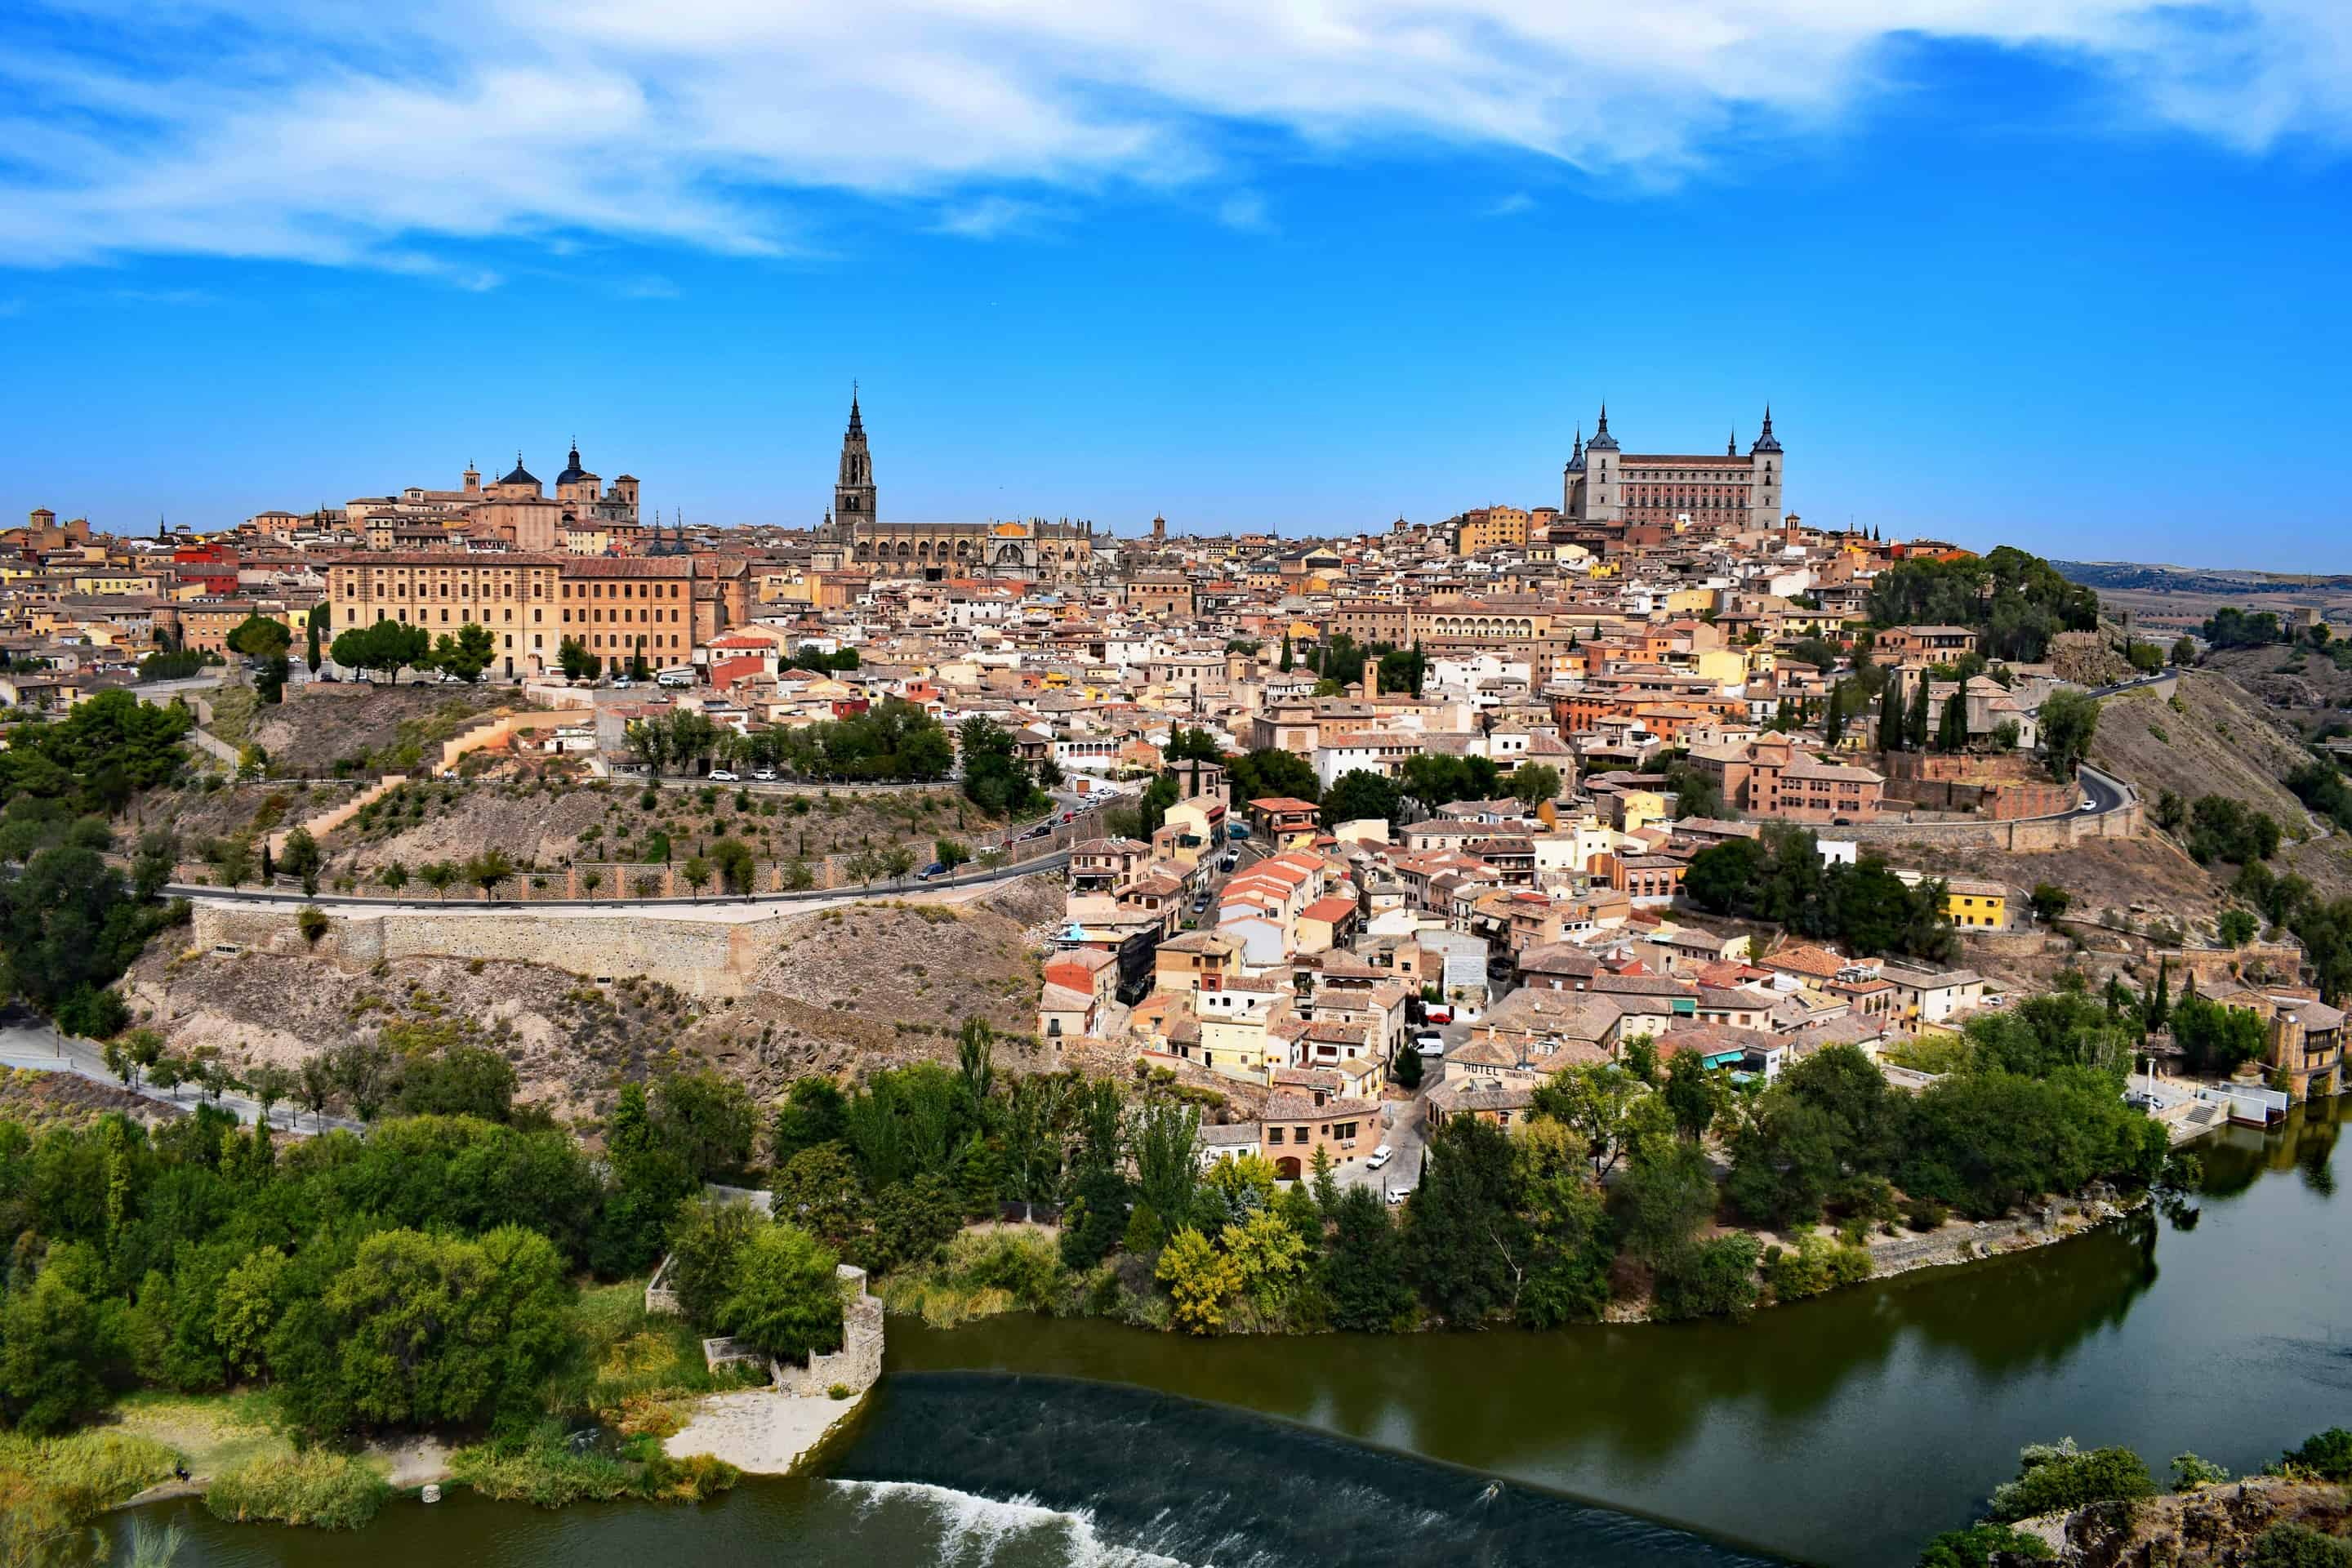 The view of Toledo